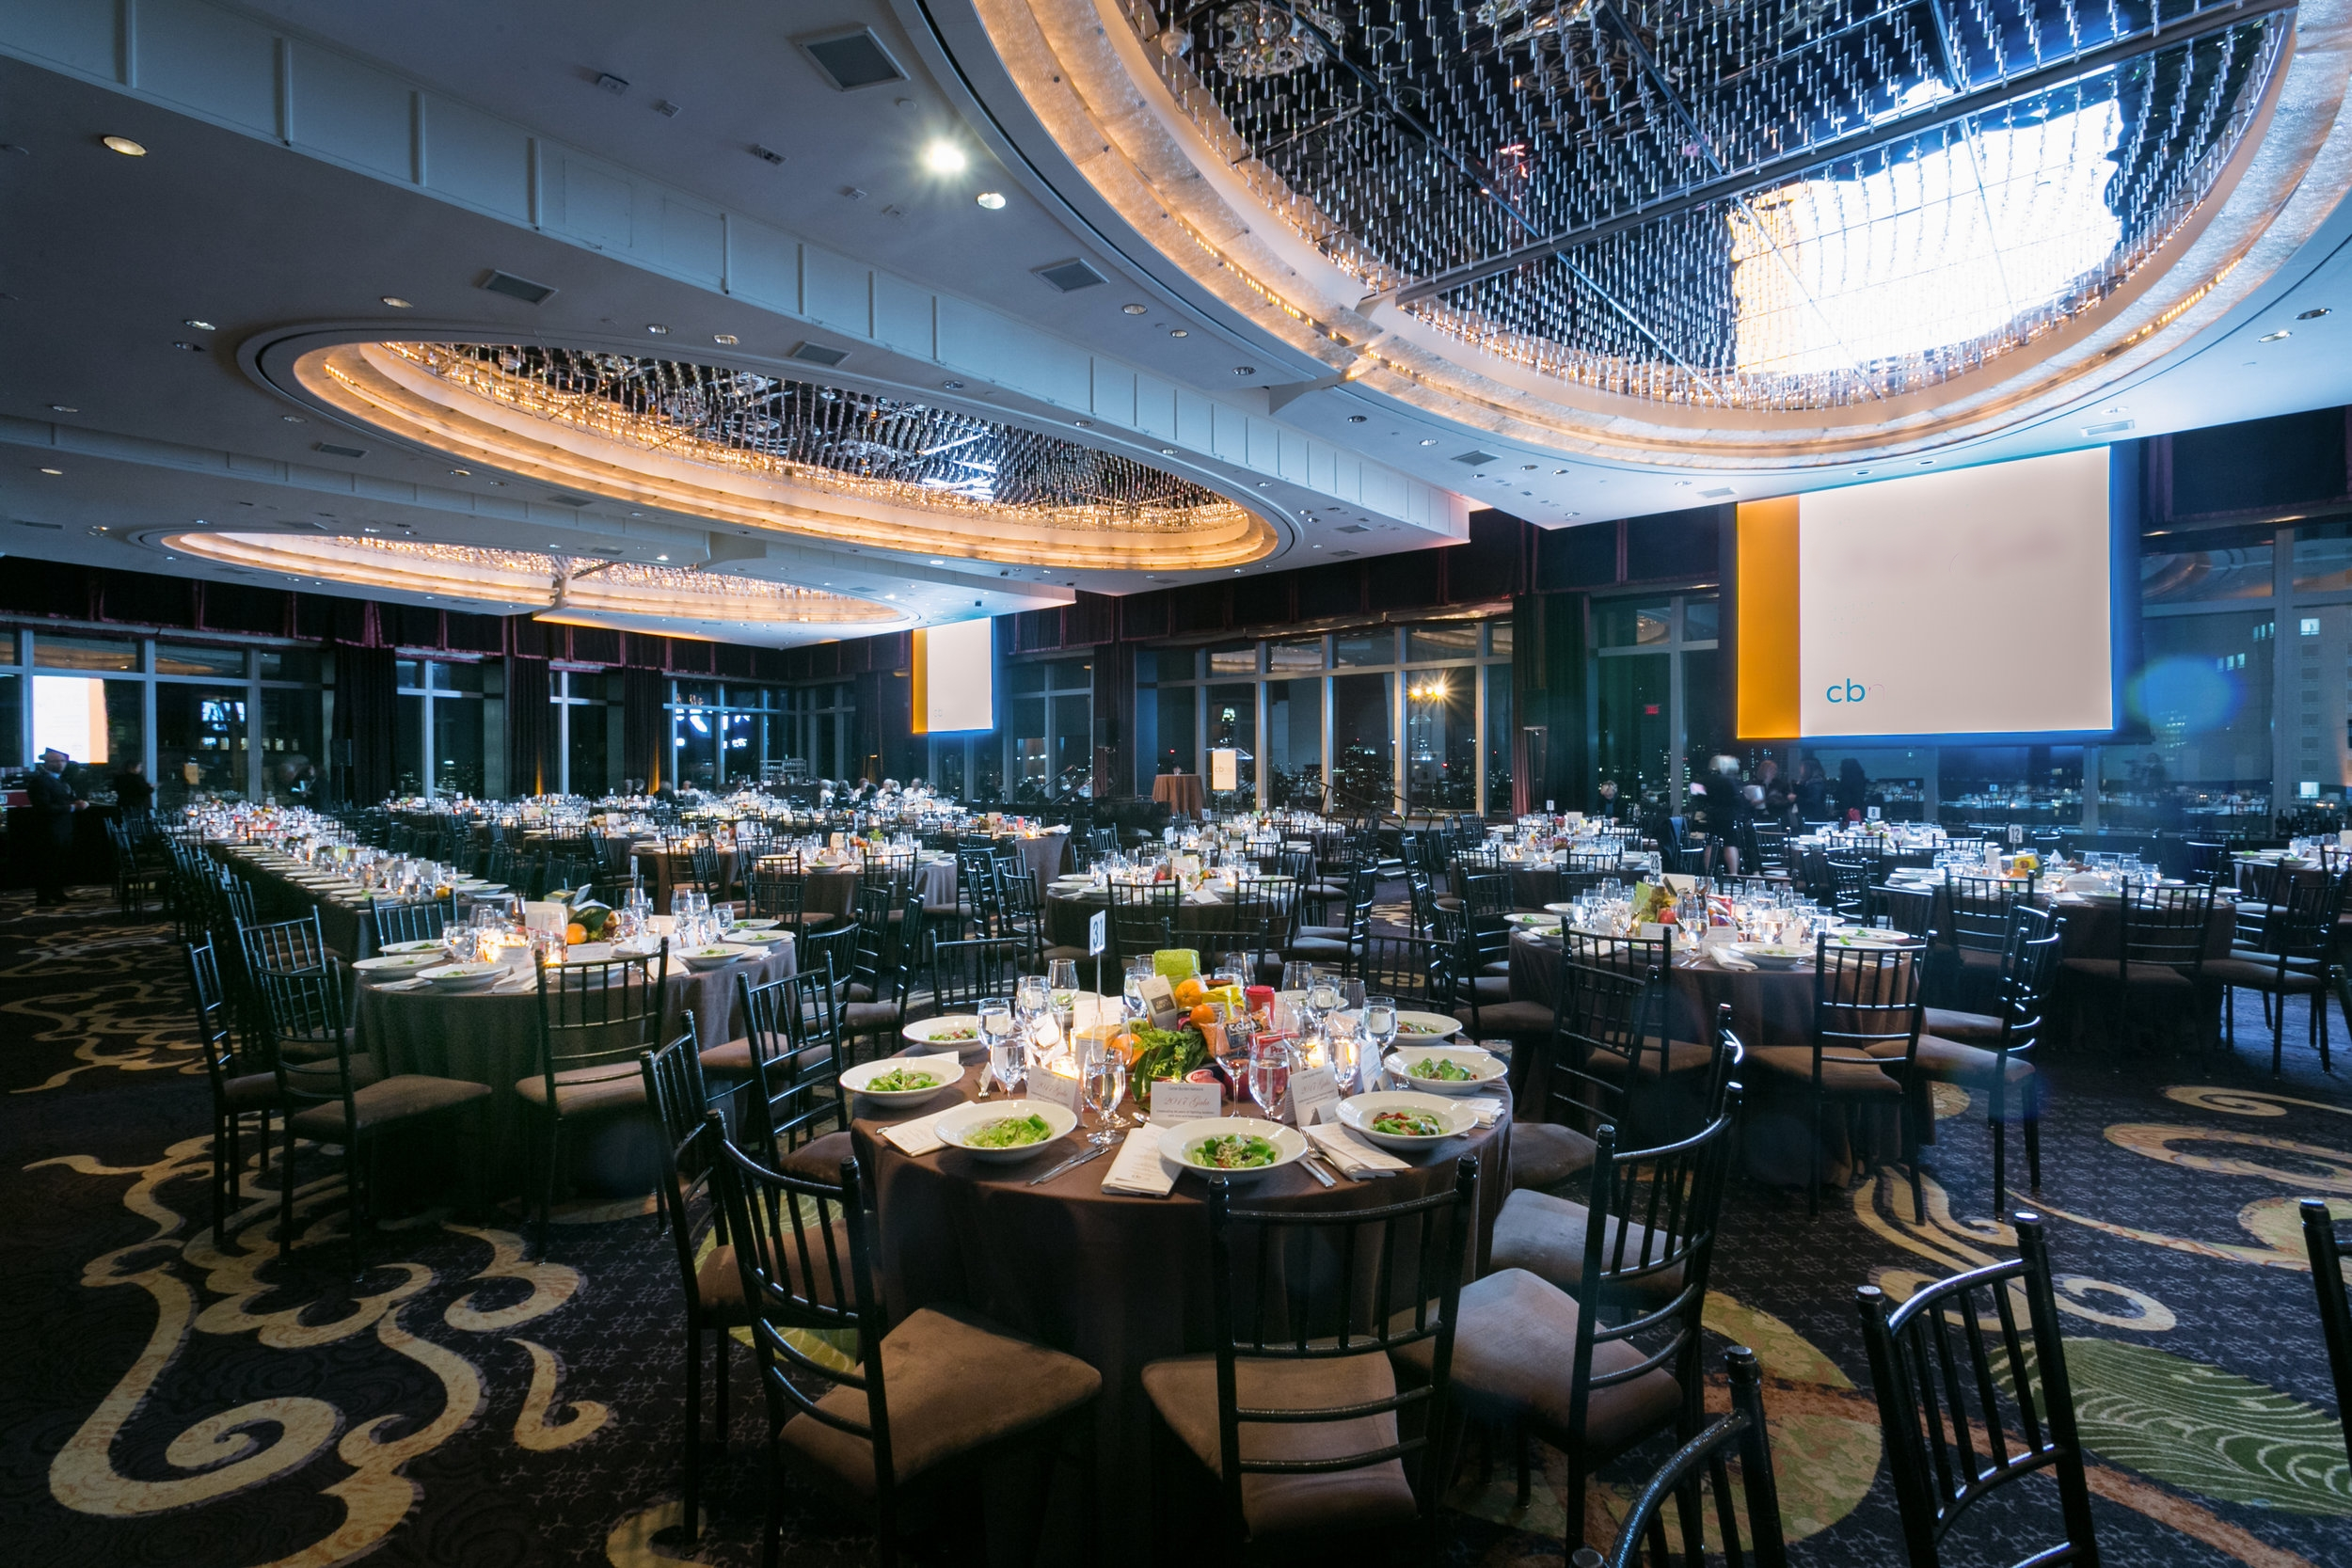 2018 GALA November 5, 2018   Honoring the Glick Family/GPG Properties    Learn More